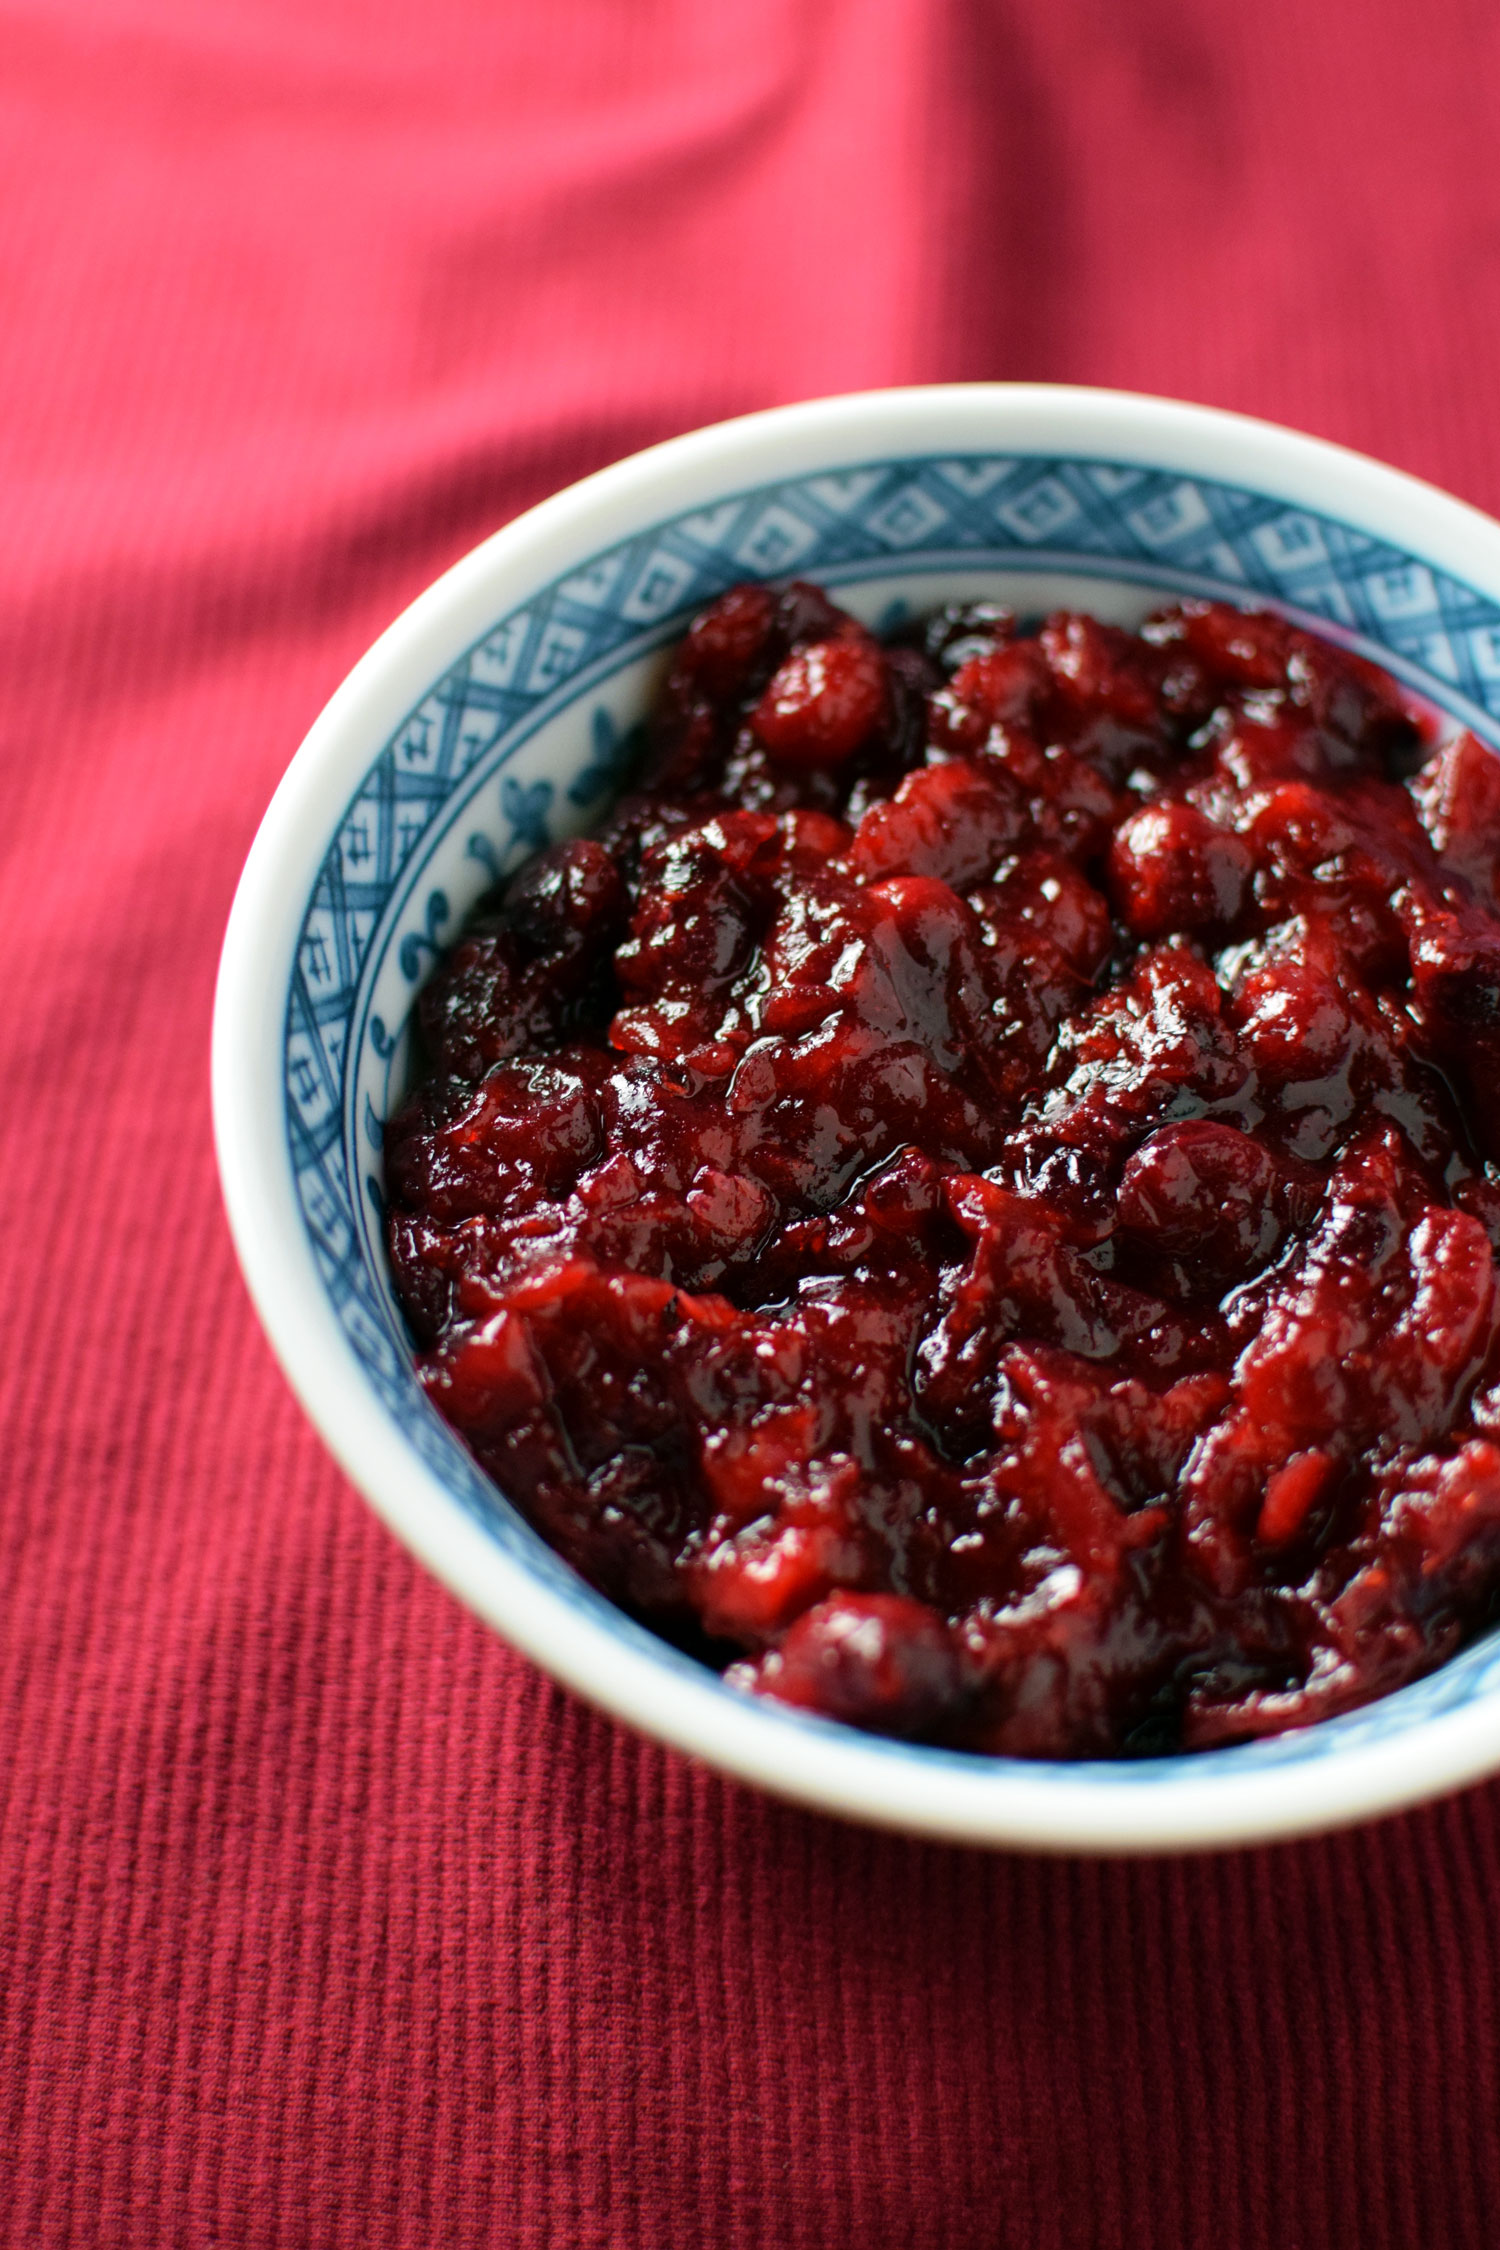 Homemade Cranberry Sauce. 3 ingredients. 1 Pot. The Easiest thanksgiving dish to Impress your family & Friends!  | themillennialmenu.com